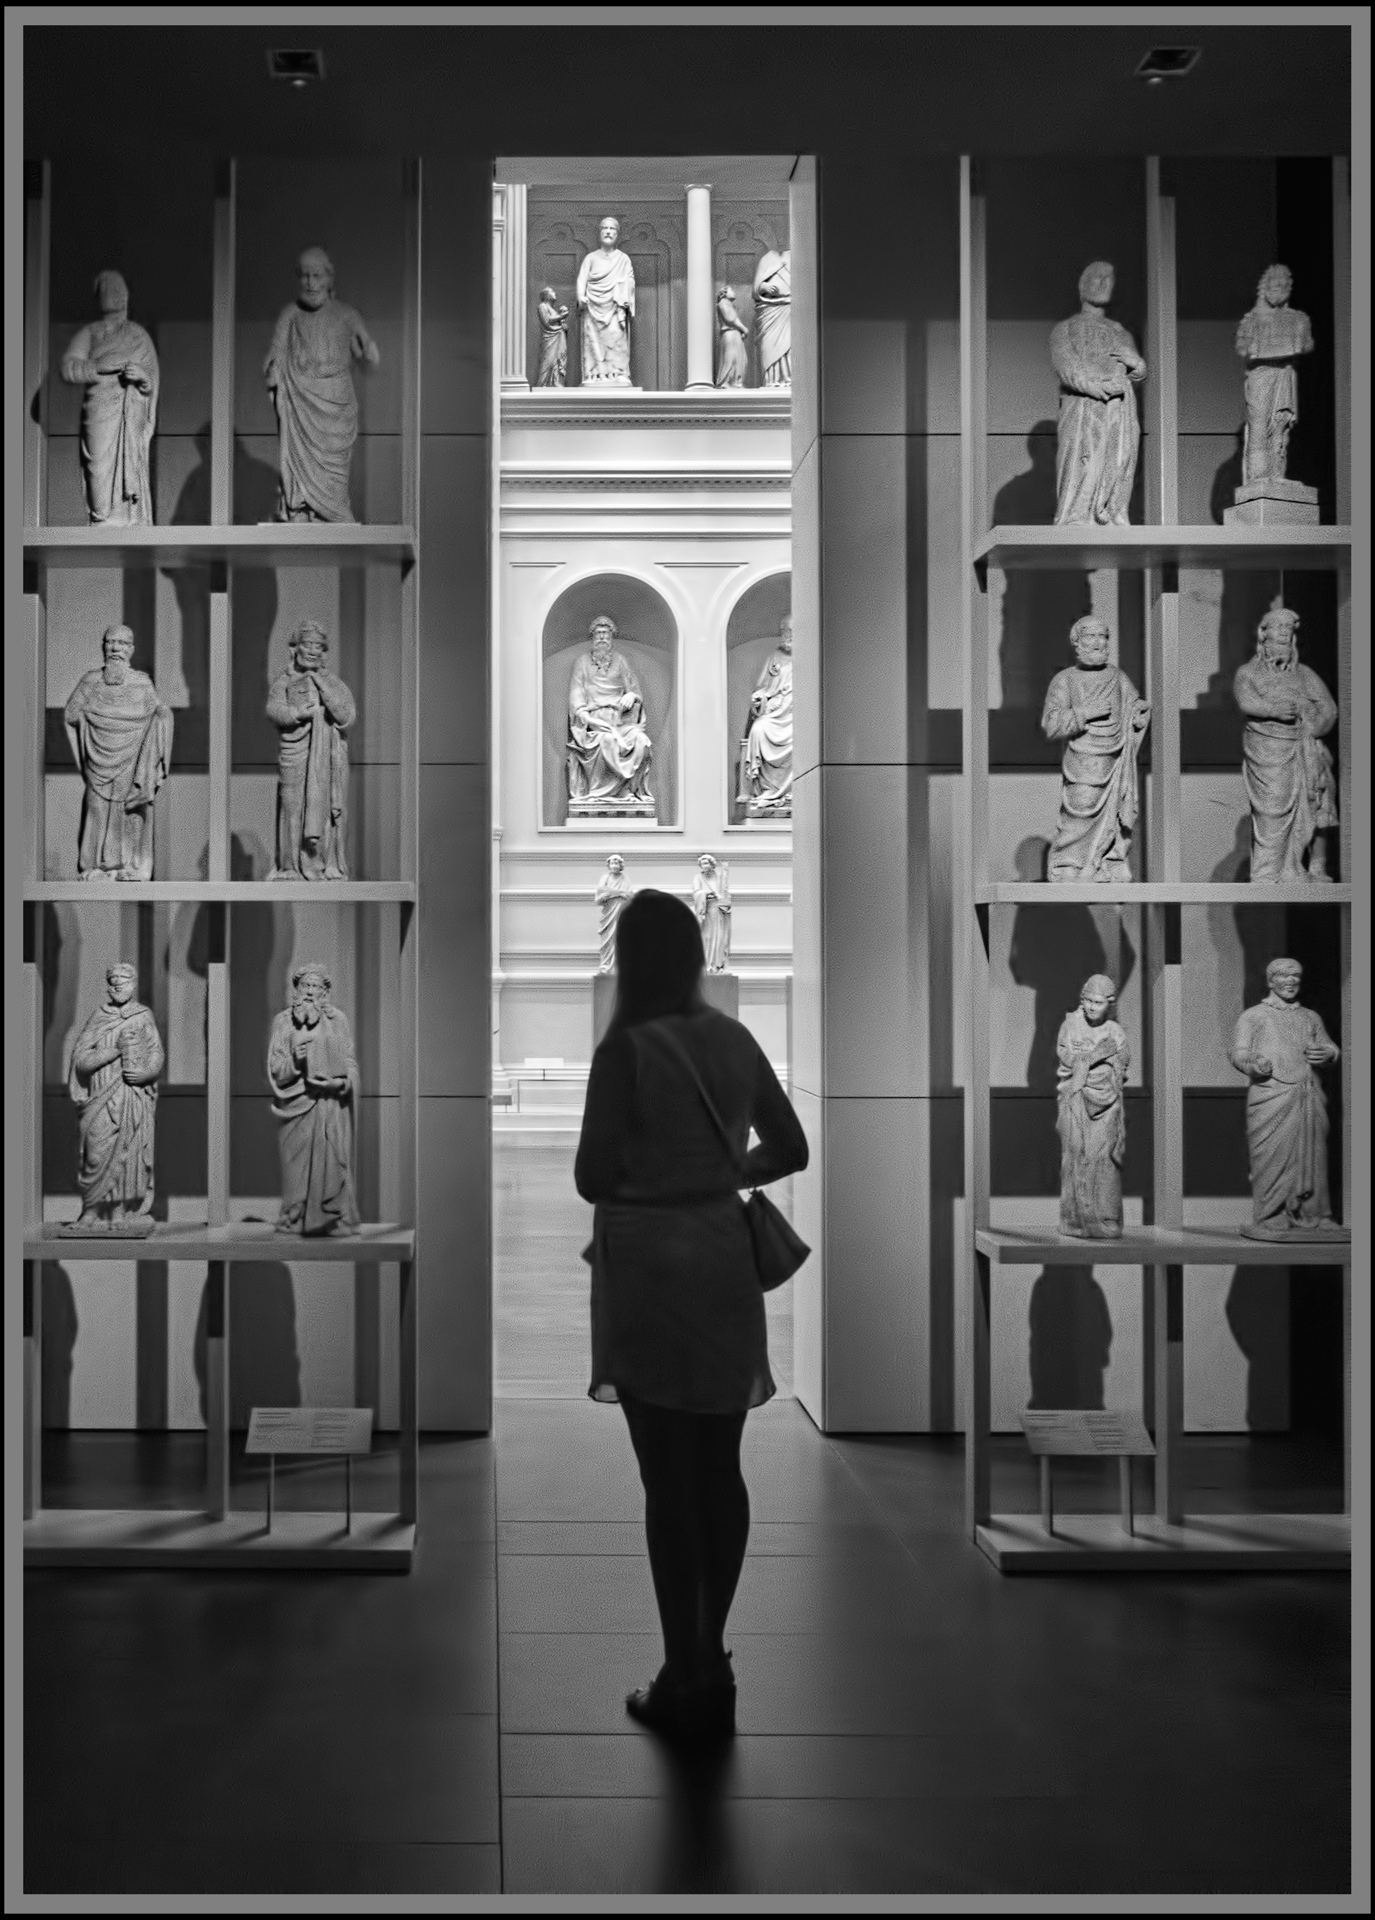 Silhouette in the Florence Gallery - Monochrome Print (Open) - Name Withheld Per Request